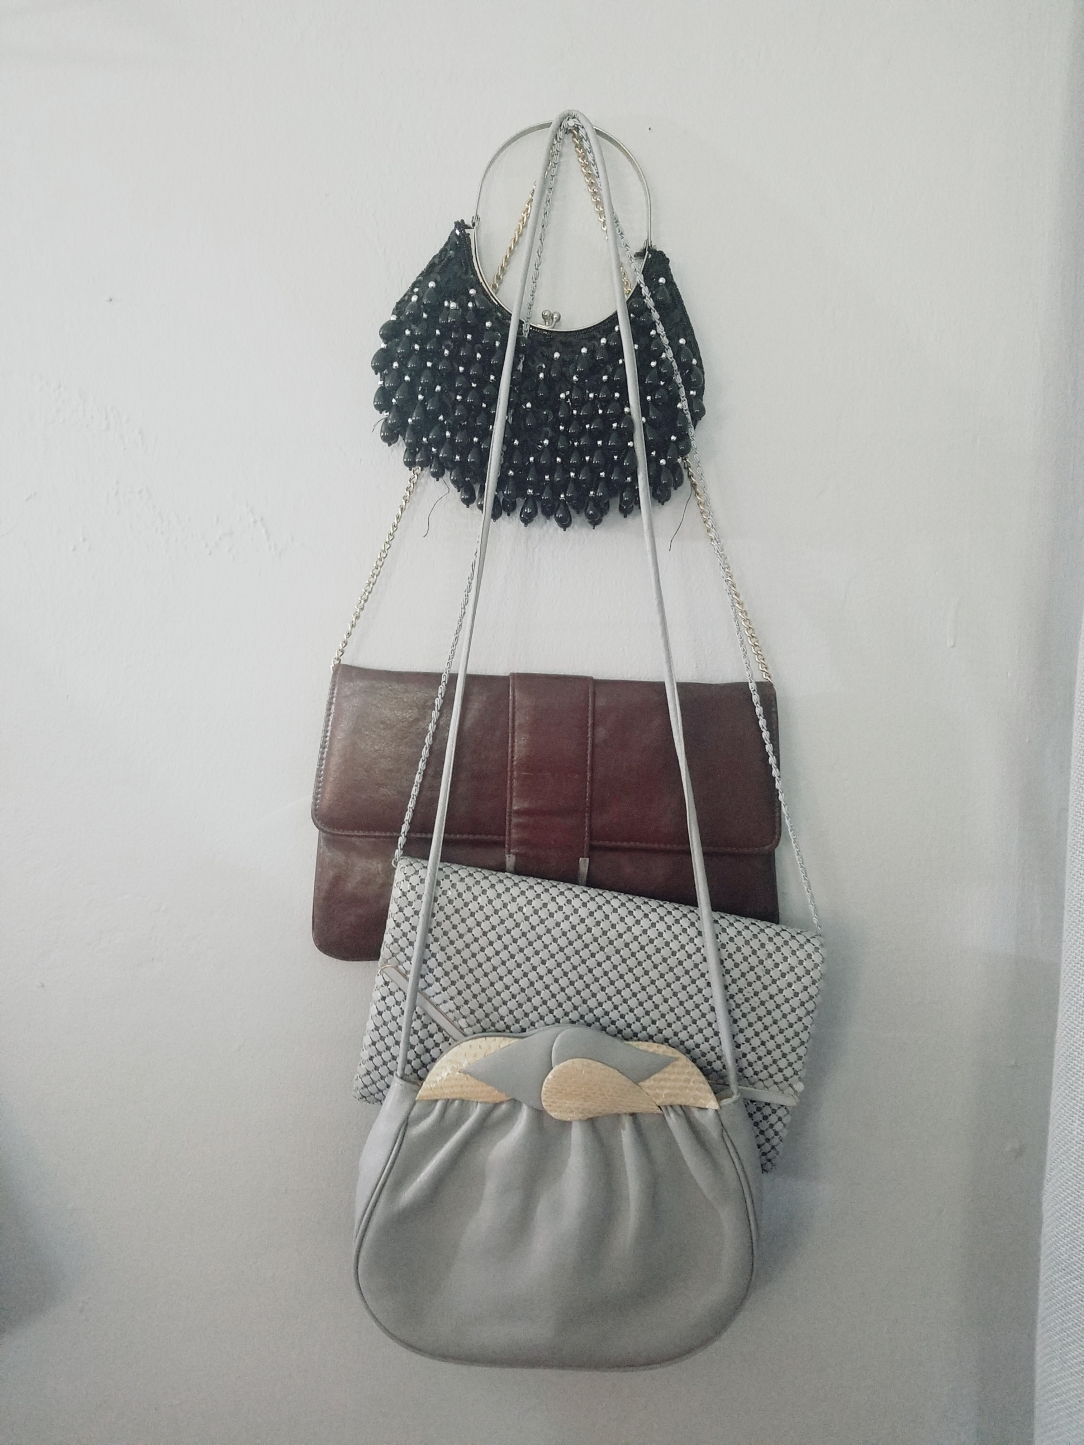 Collection of vintage handbags